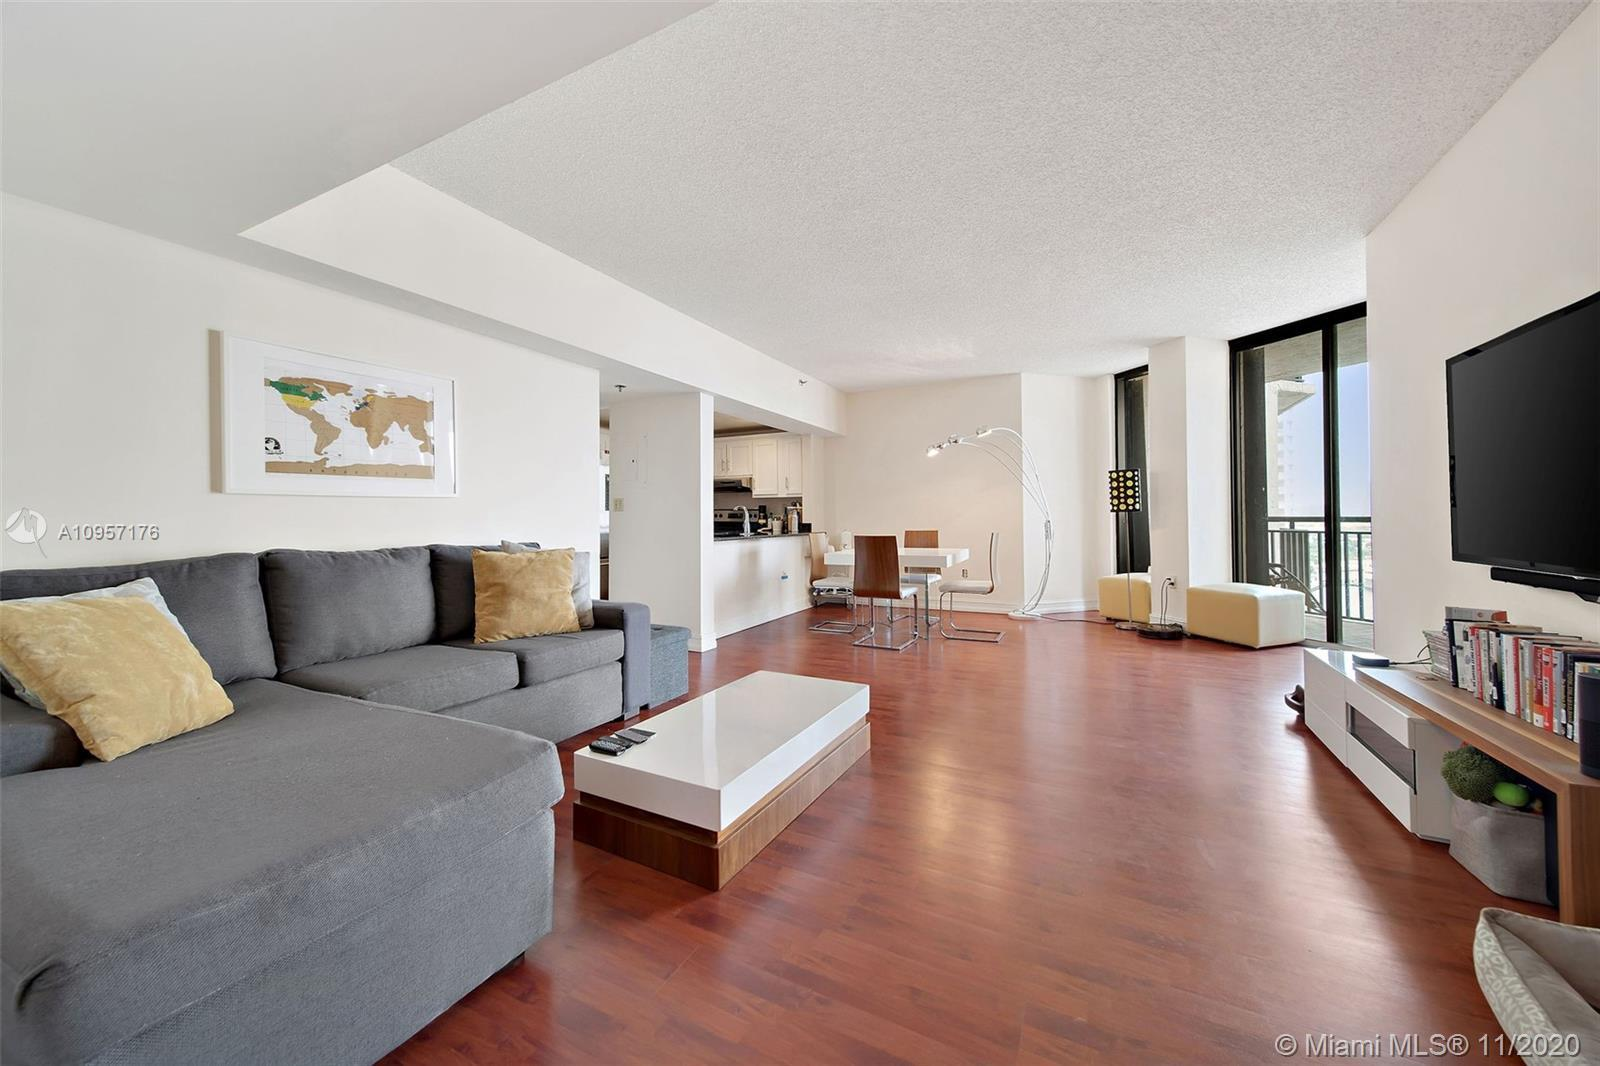 Spacious, renovated, turnkey 1 bedroom with almost 800 SqFt of living space on the exclusive Island